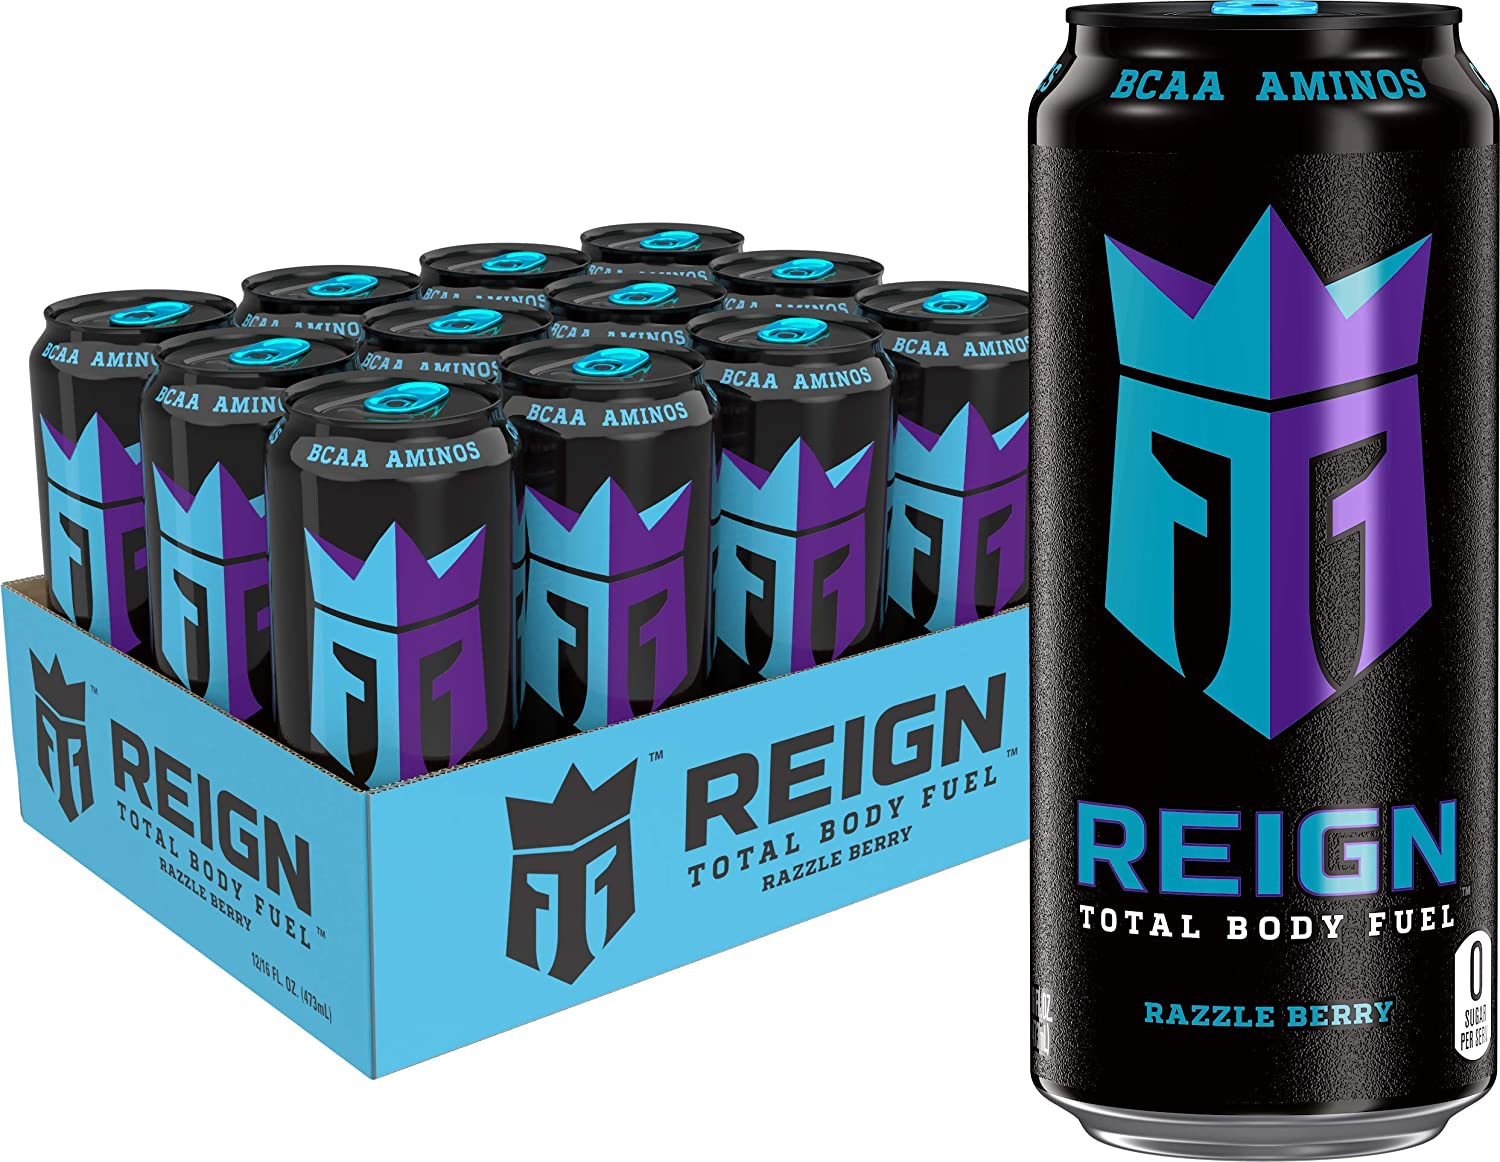 Reign Total Body Fuel, Razzle Berry, Fitness & Performance Drink, 16 Oz (Pack of 12)